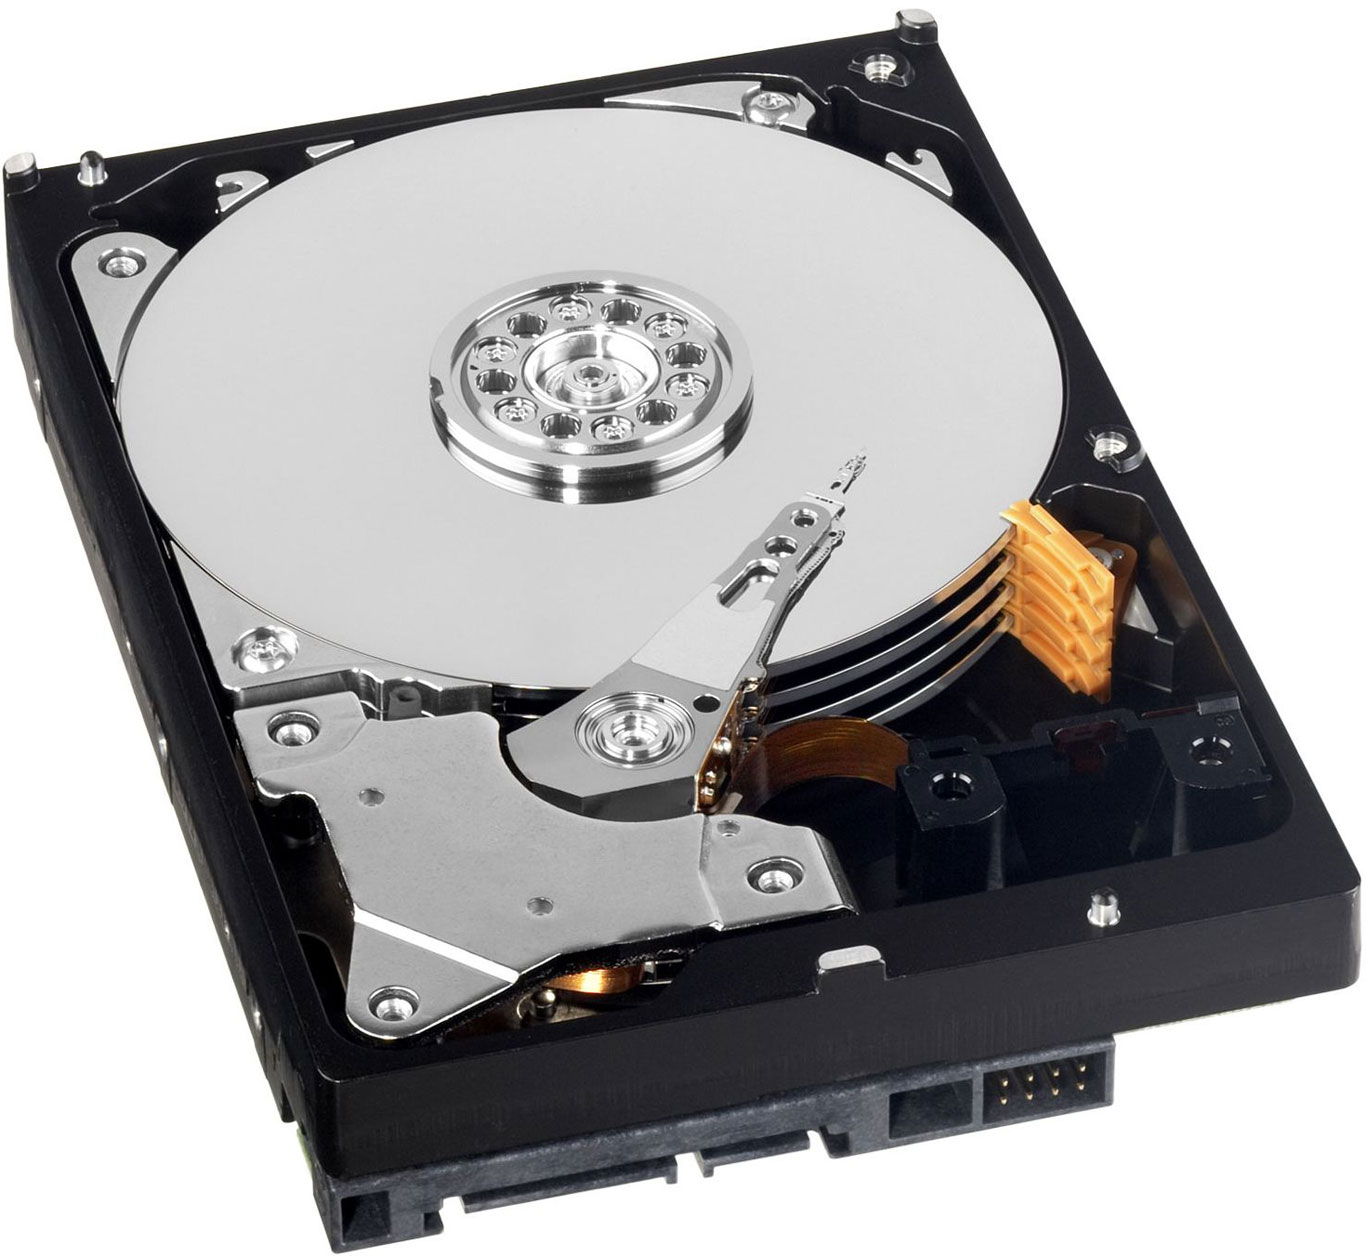 PC Sata 80GB HDD